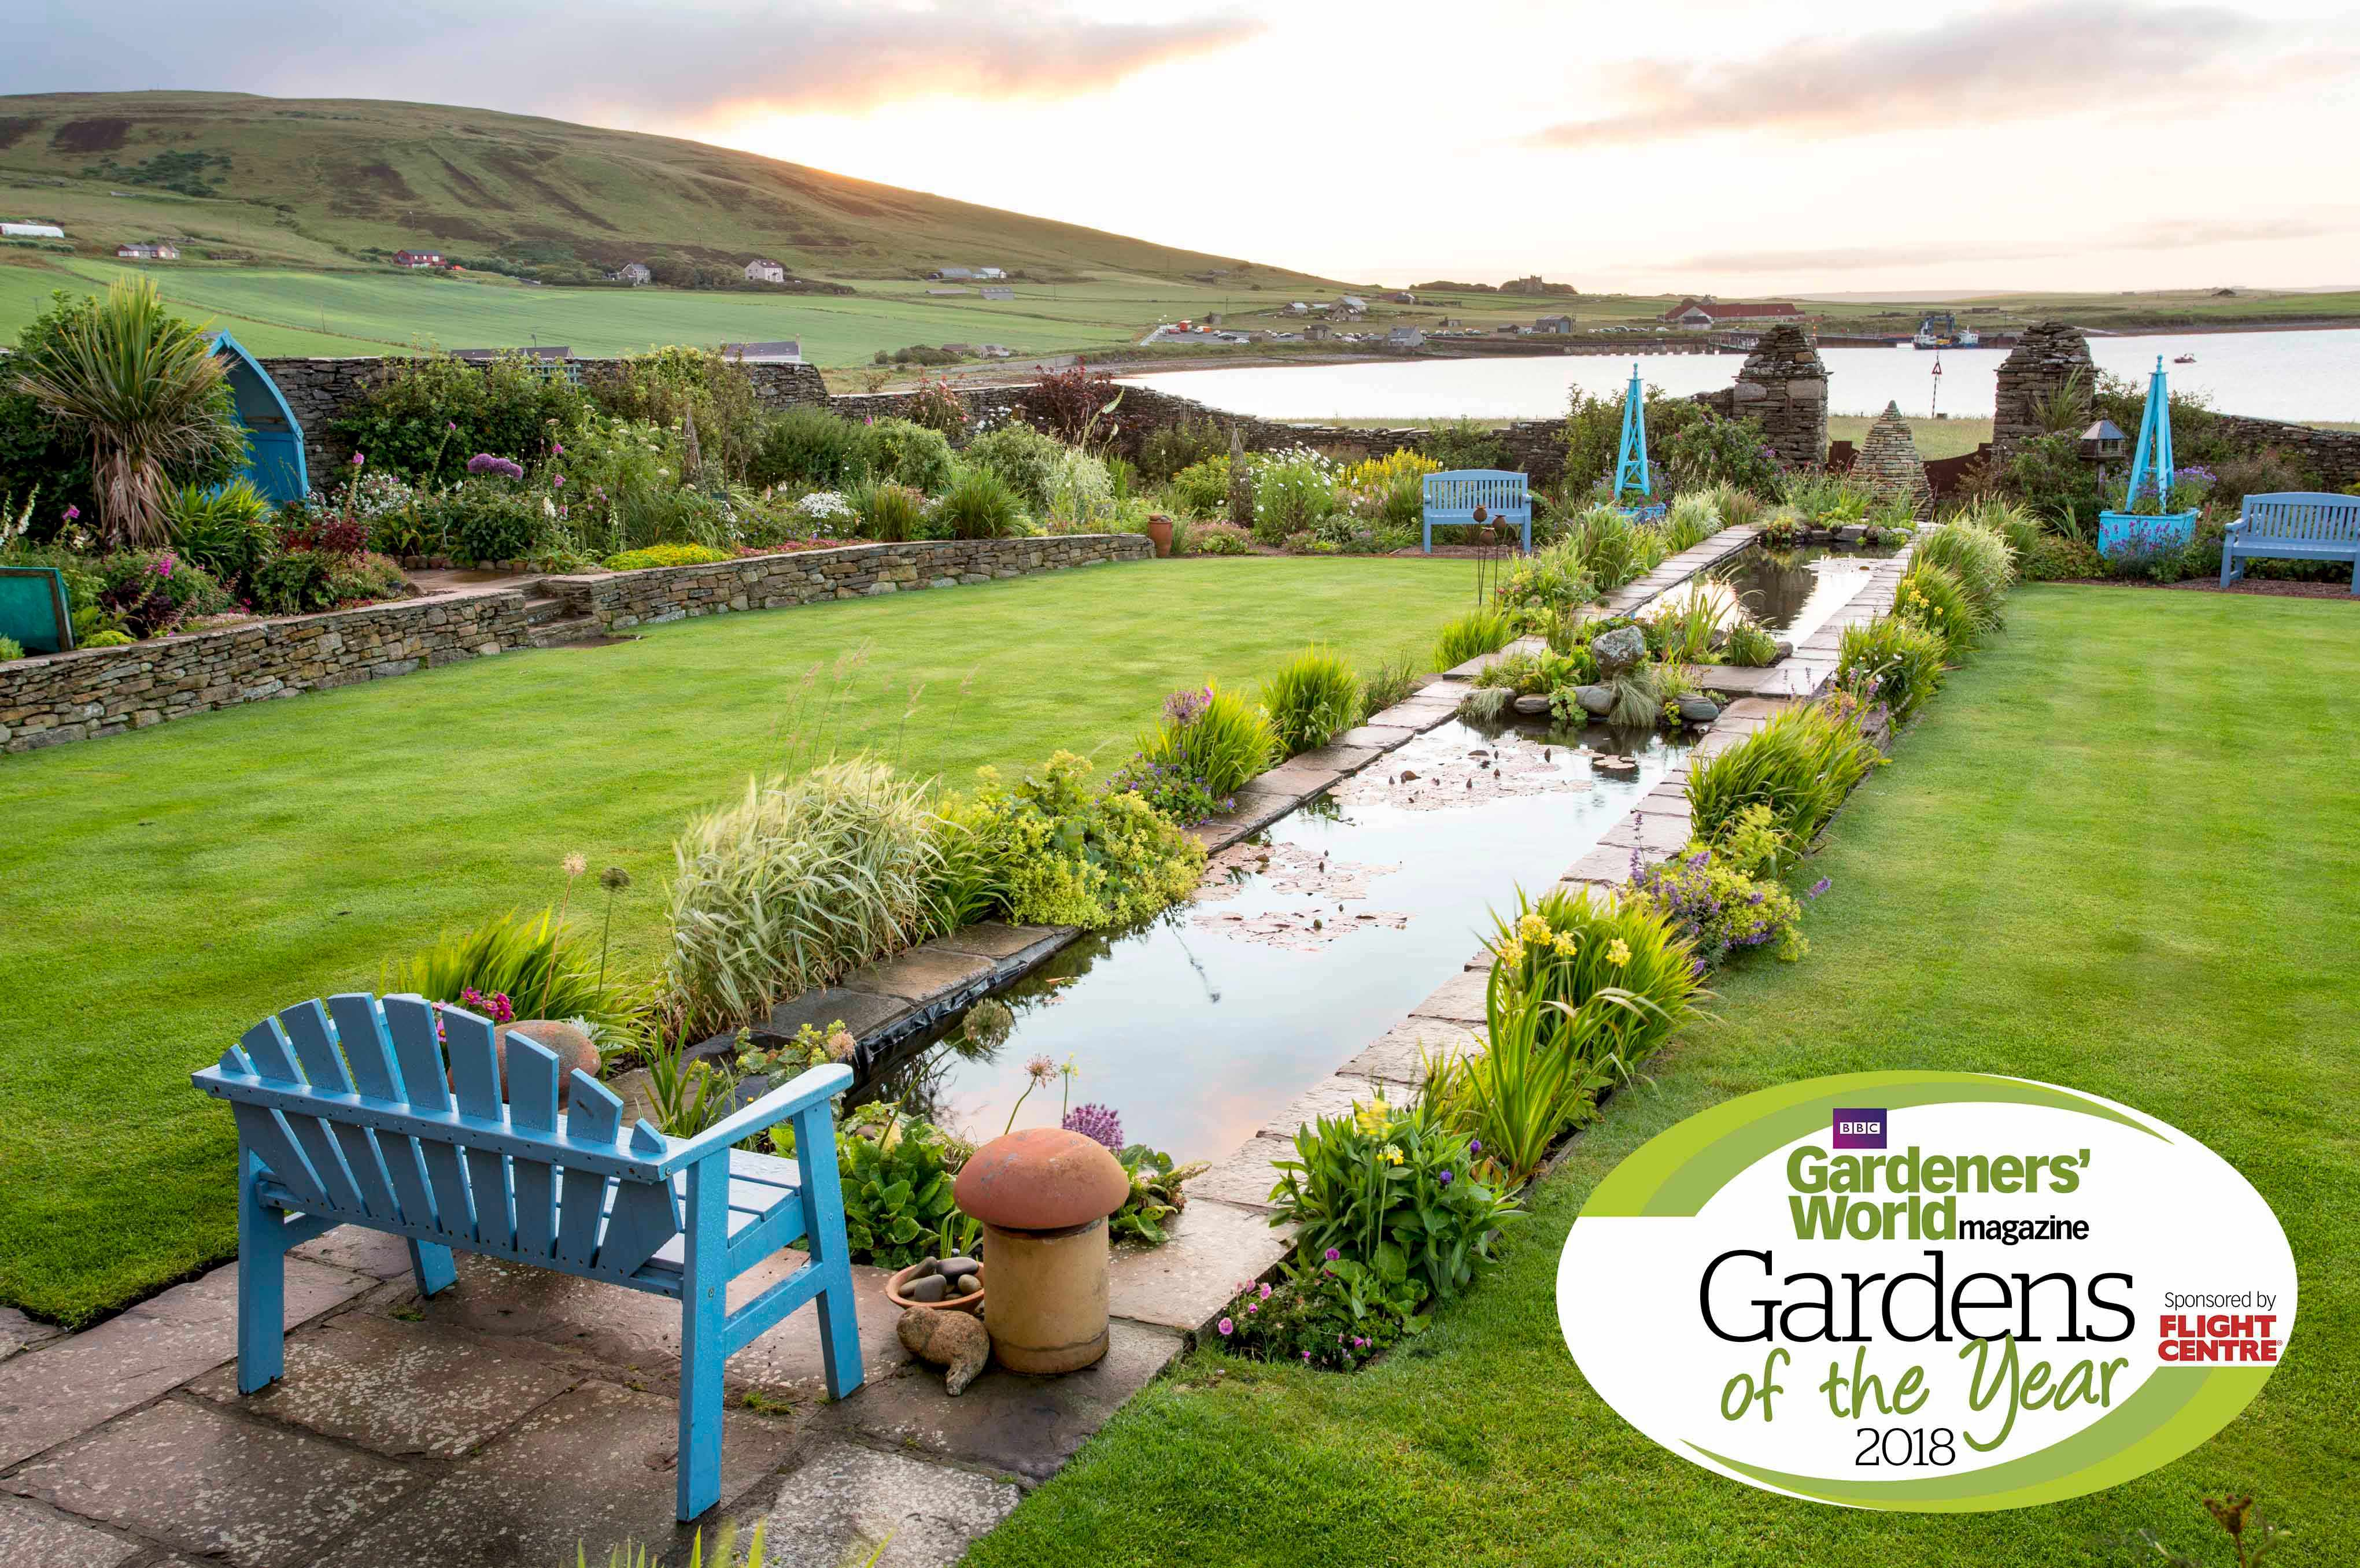 Caroline Critchlow 